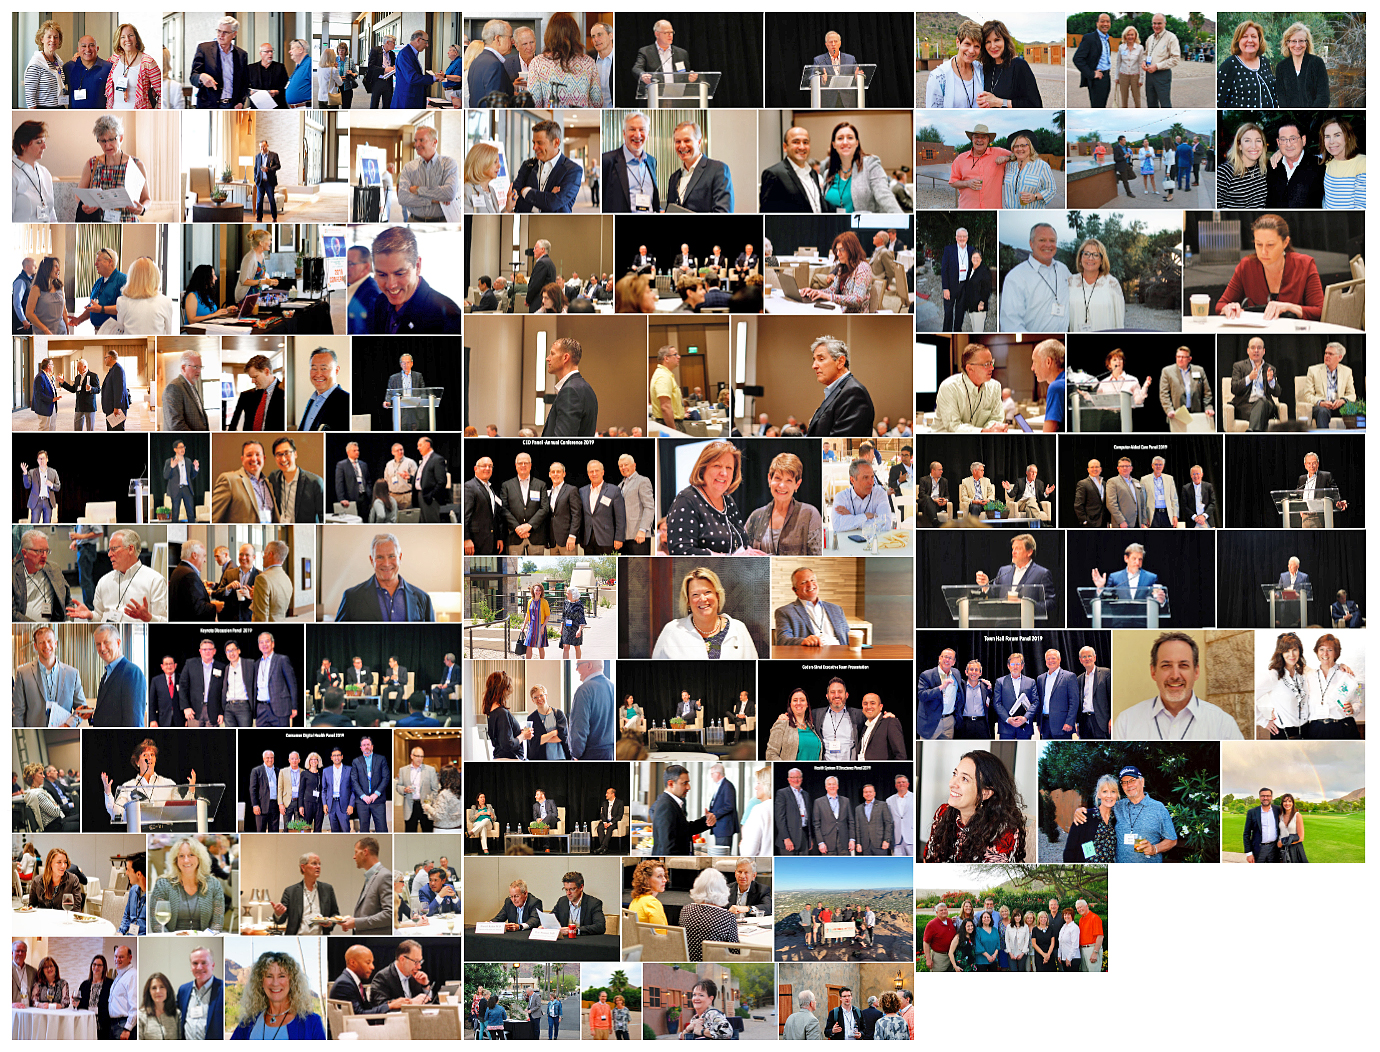 collage of conference photos